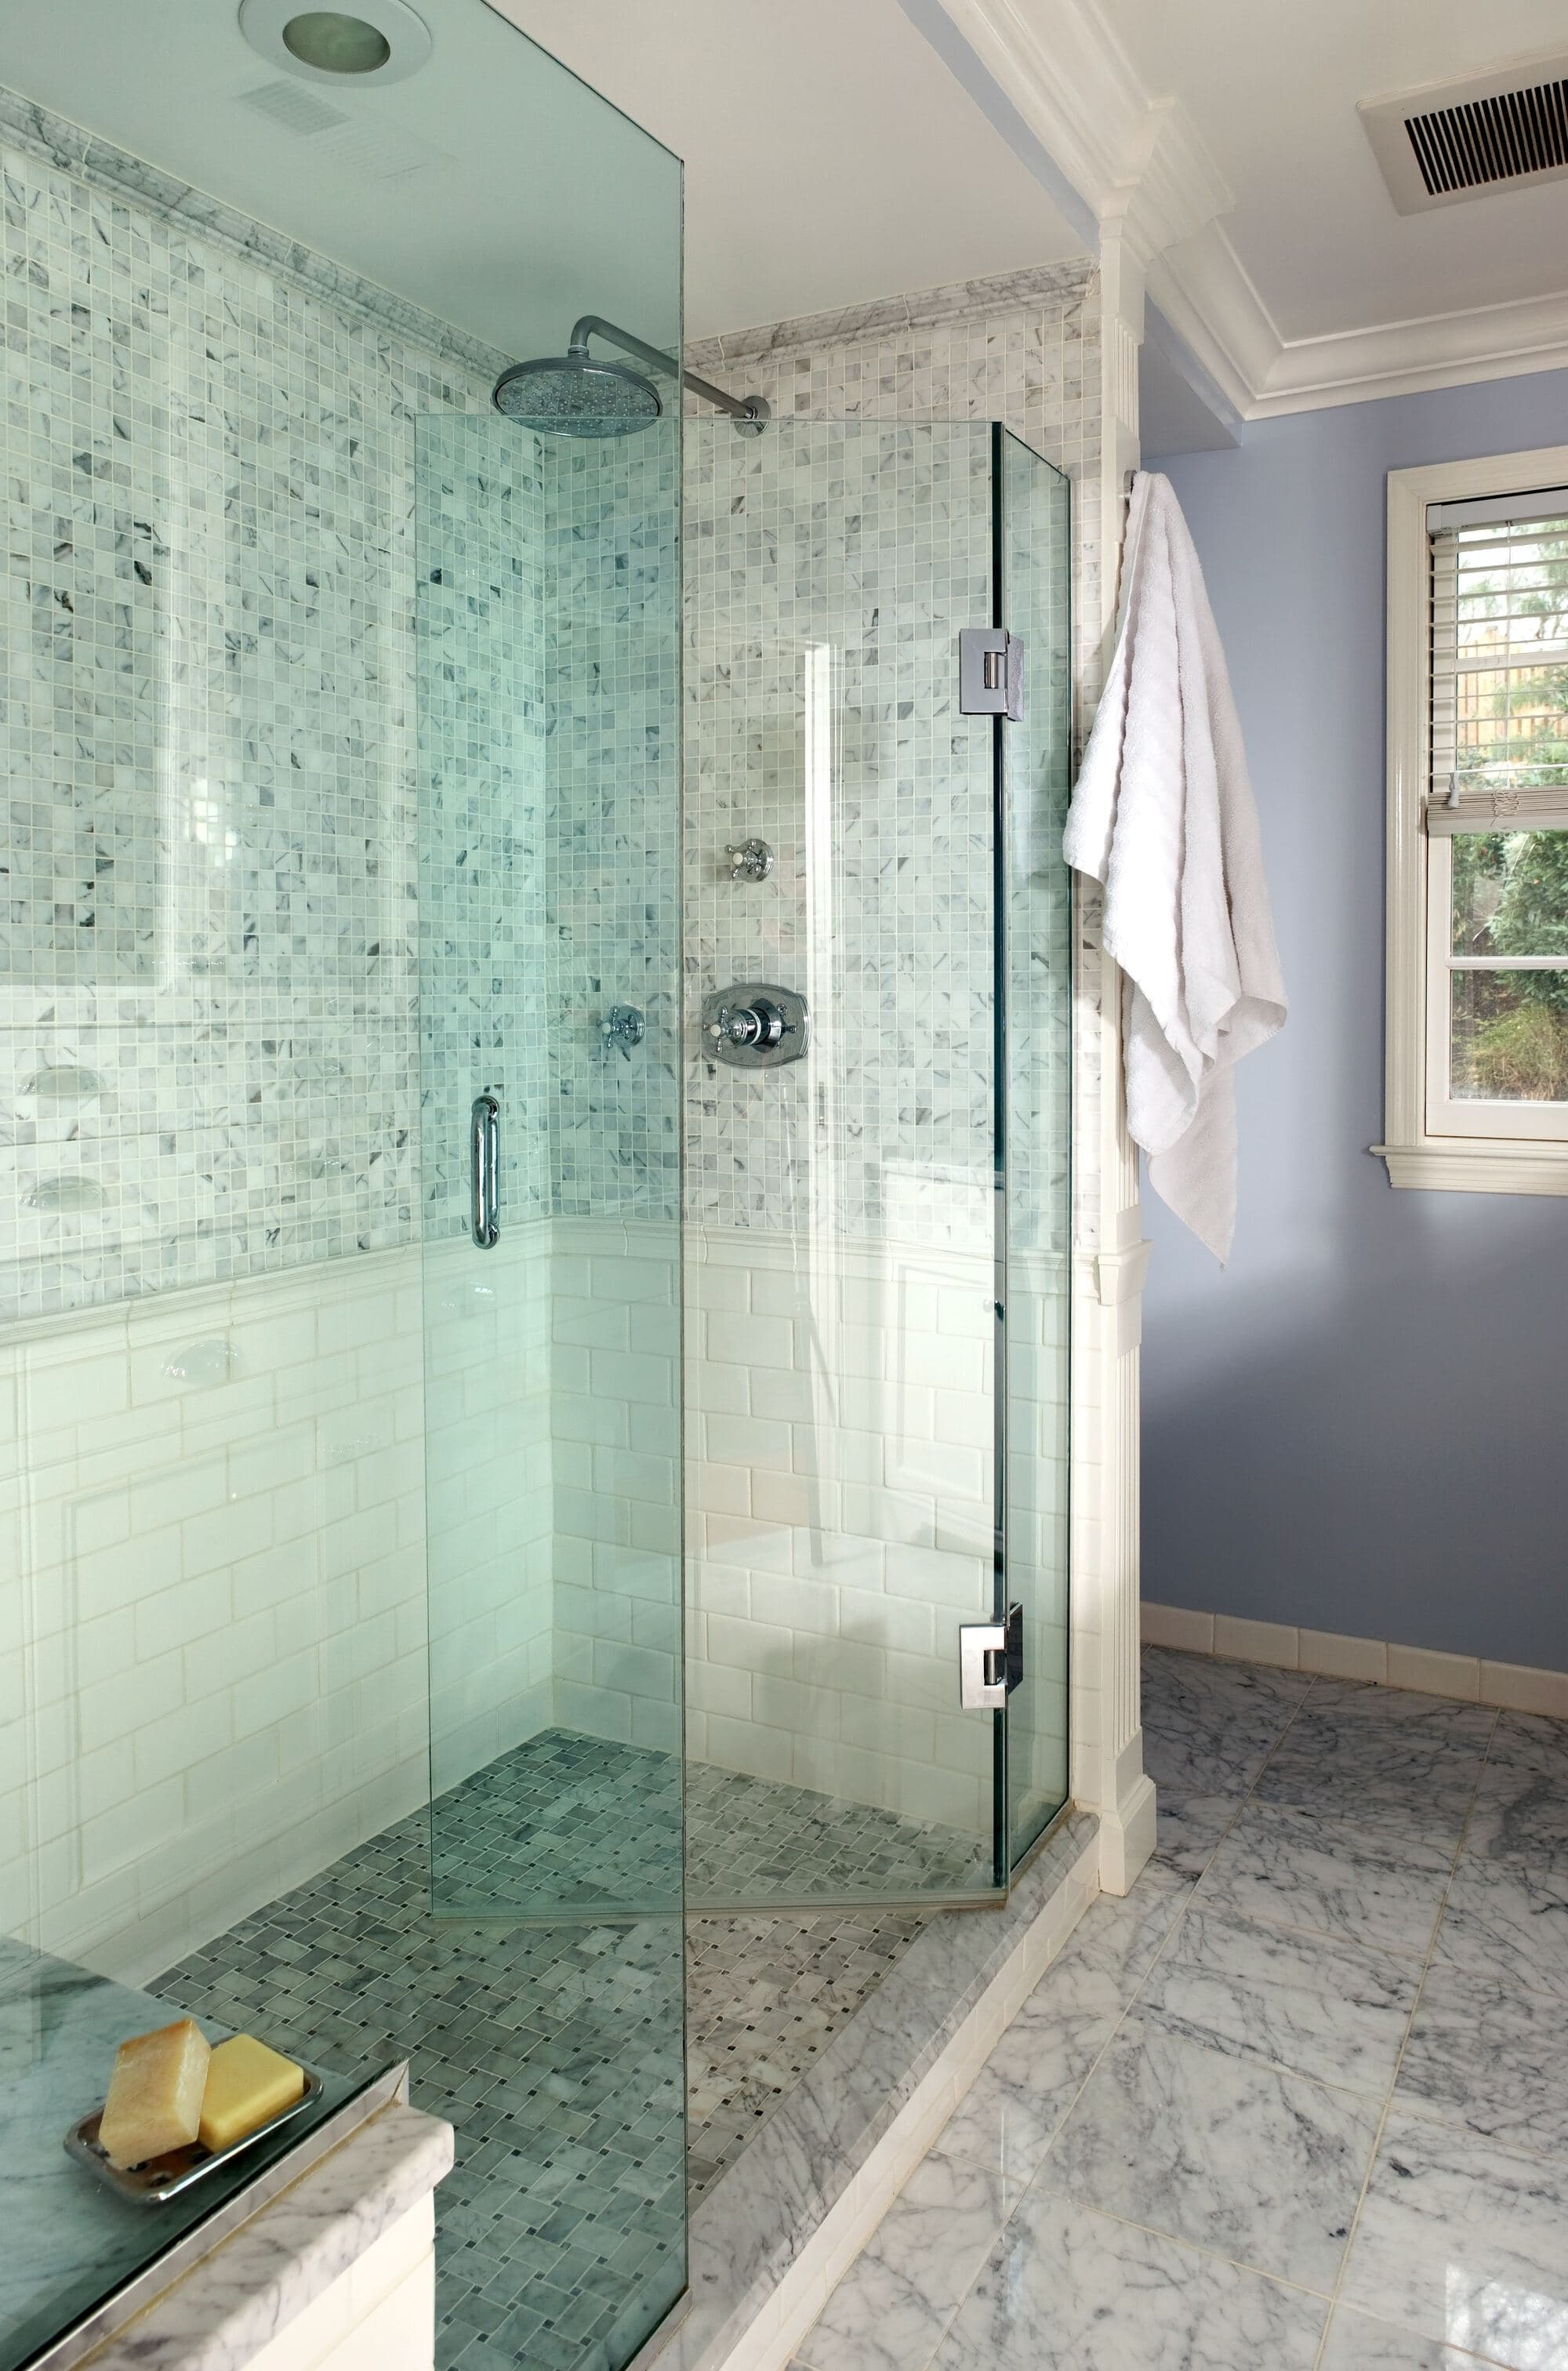 Image: Bath Renovation, Bethesda, MD